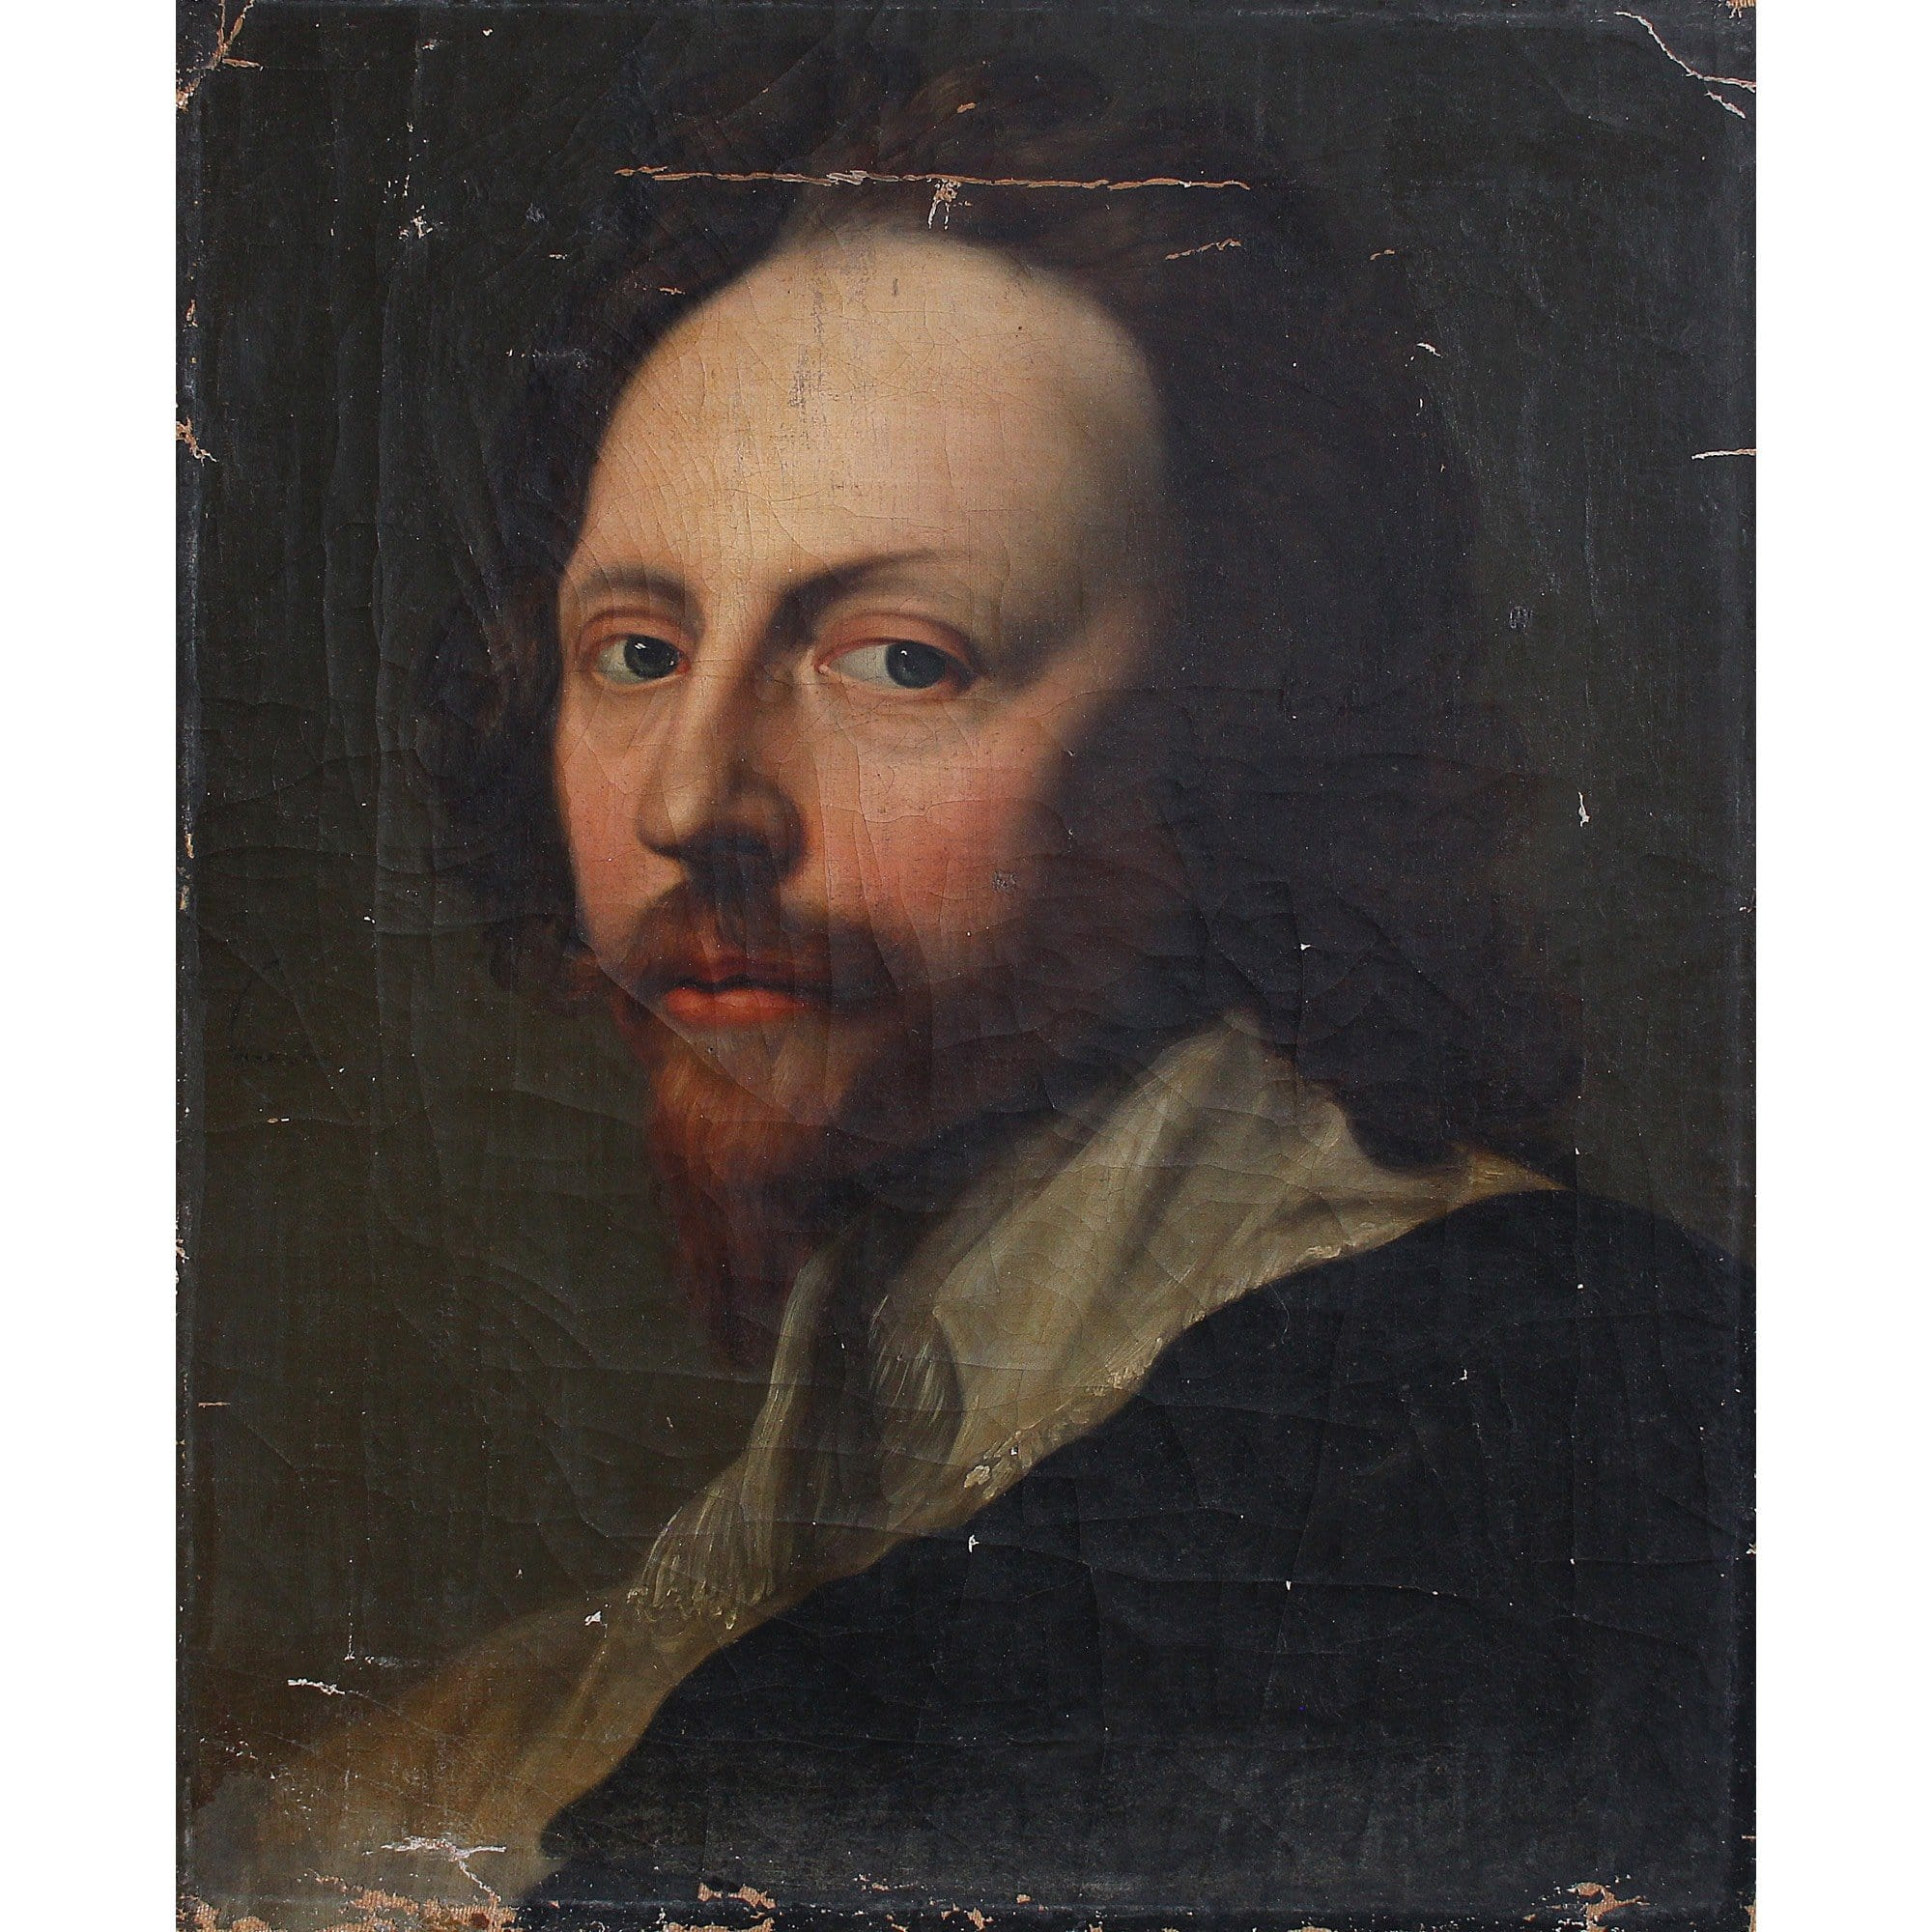 After Sir Anthony Van Dyck, Portrait Of Nicholas Lanier - Original Framed Painting - Antique Art - Brave Fine Art